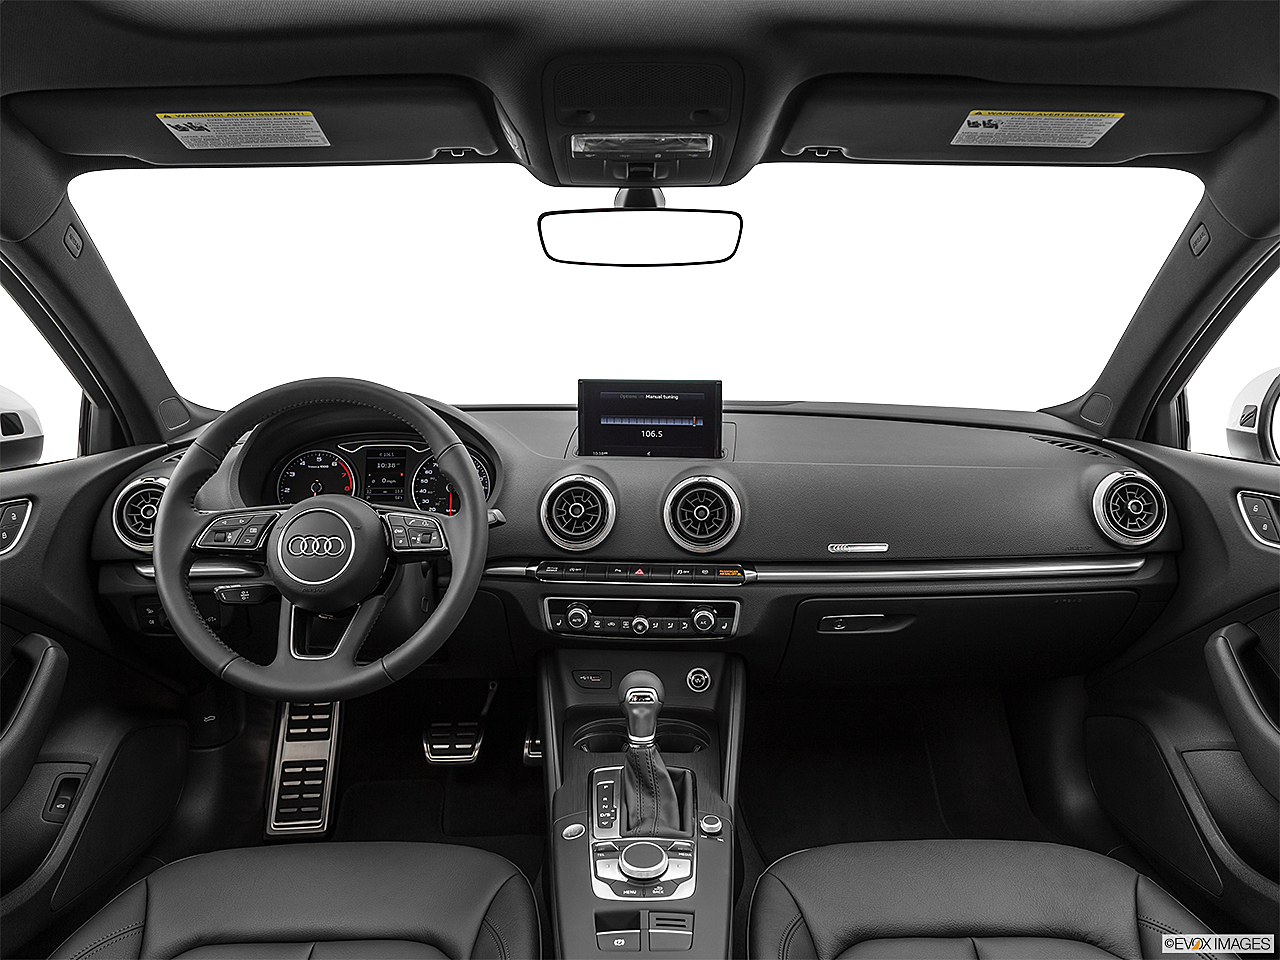 2020 Audi A3 Premium 40 TFSI, centered wide dash shot